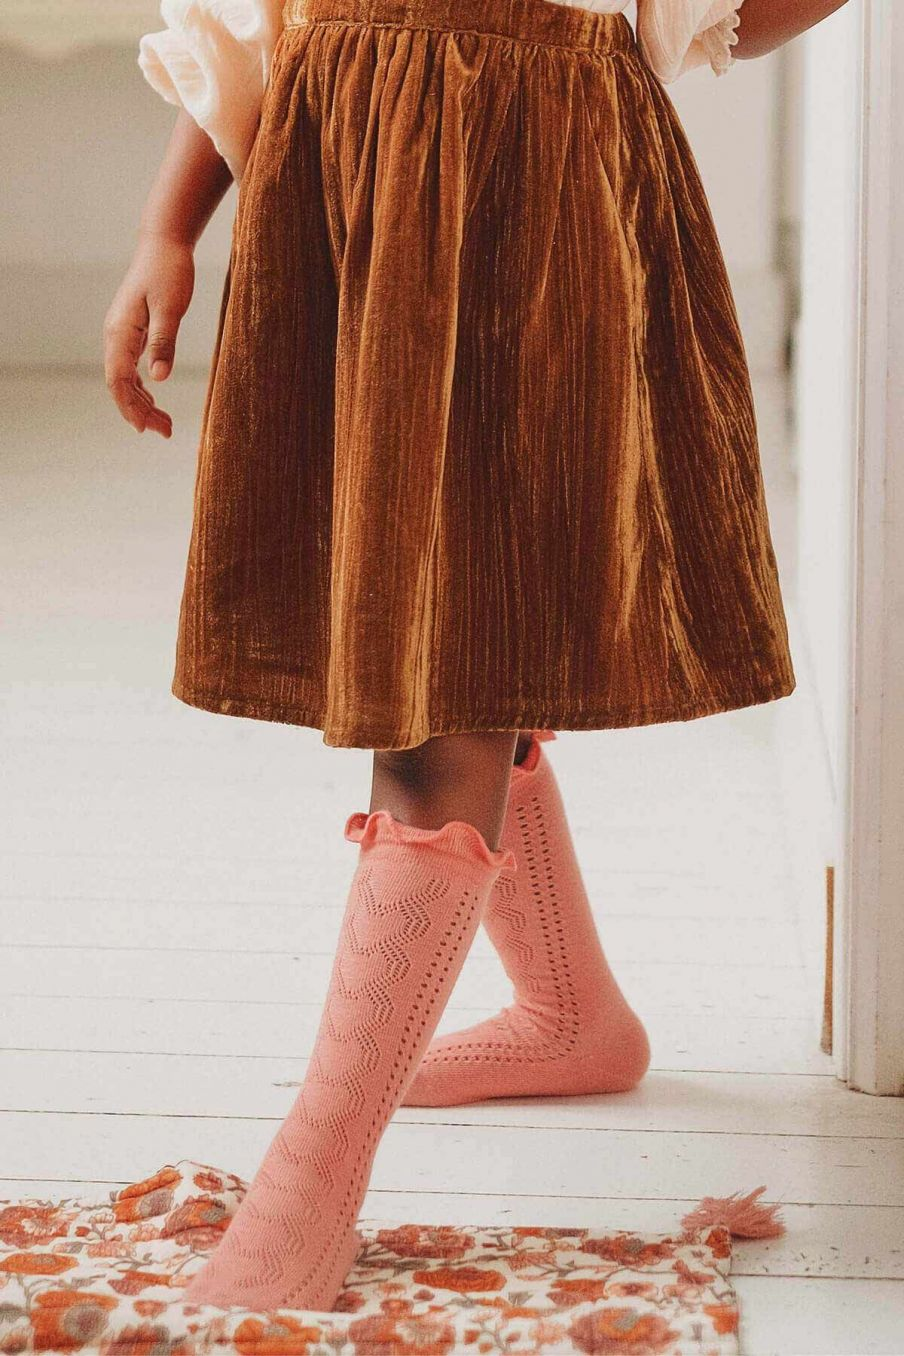 chaussettes fille chilou sienna - louise misha